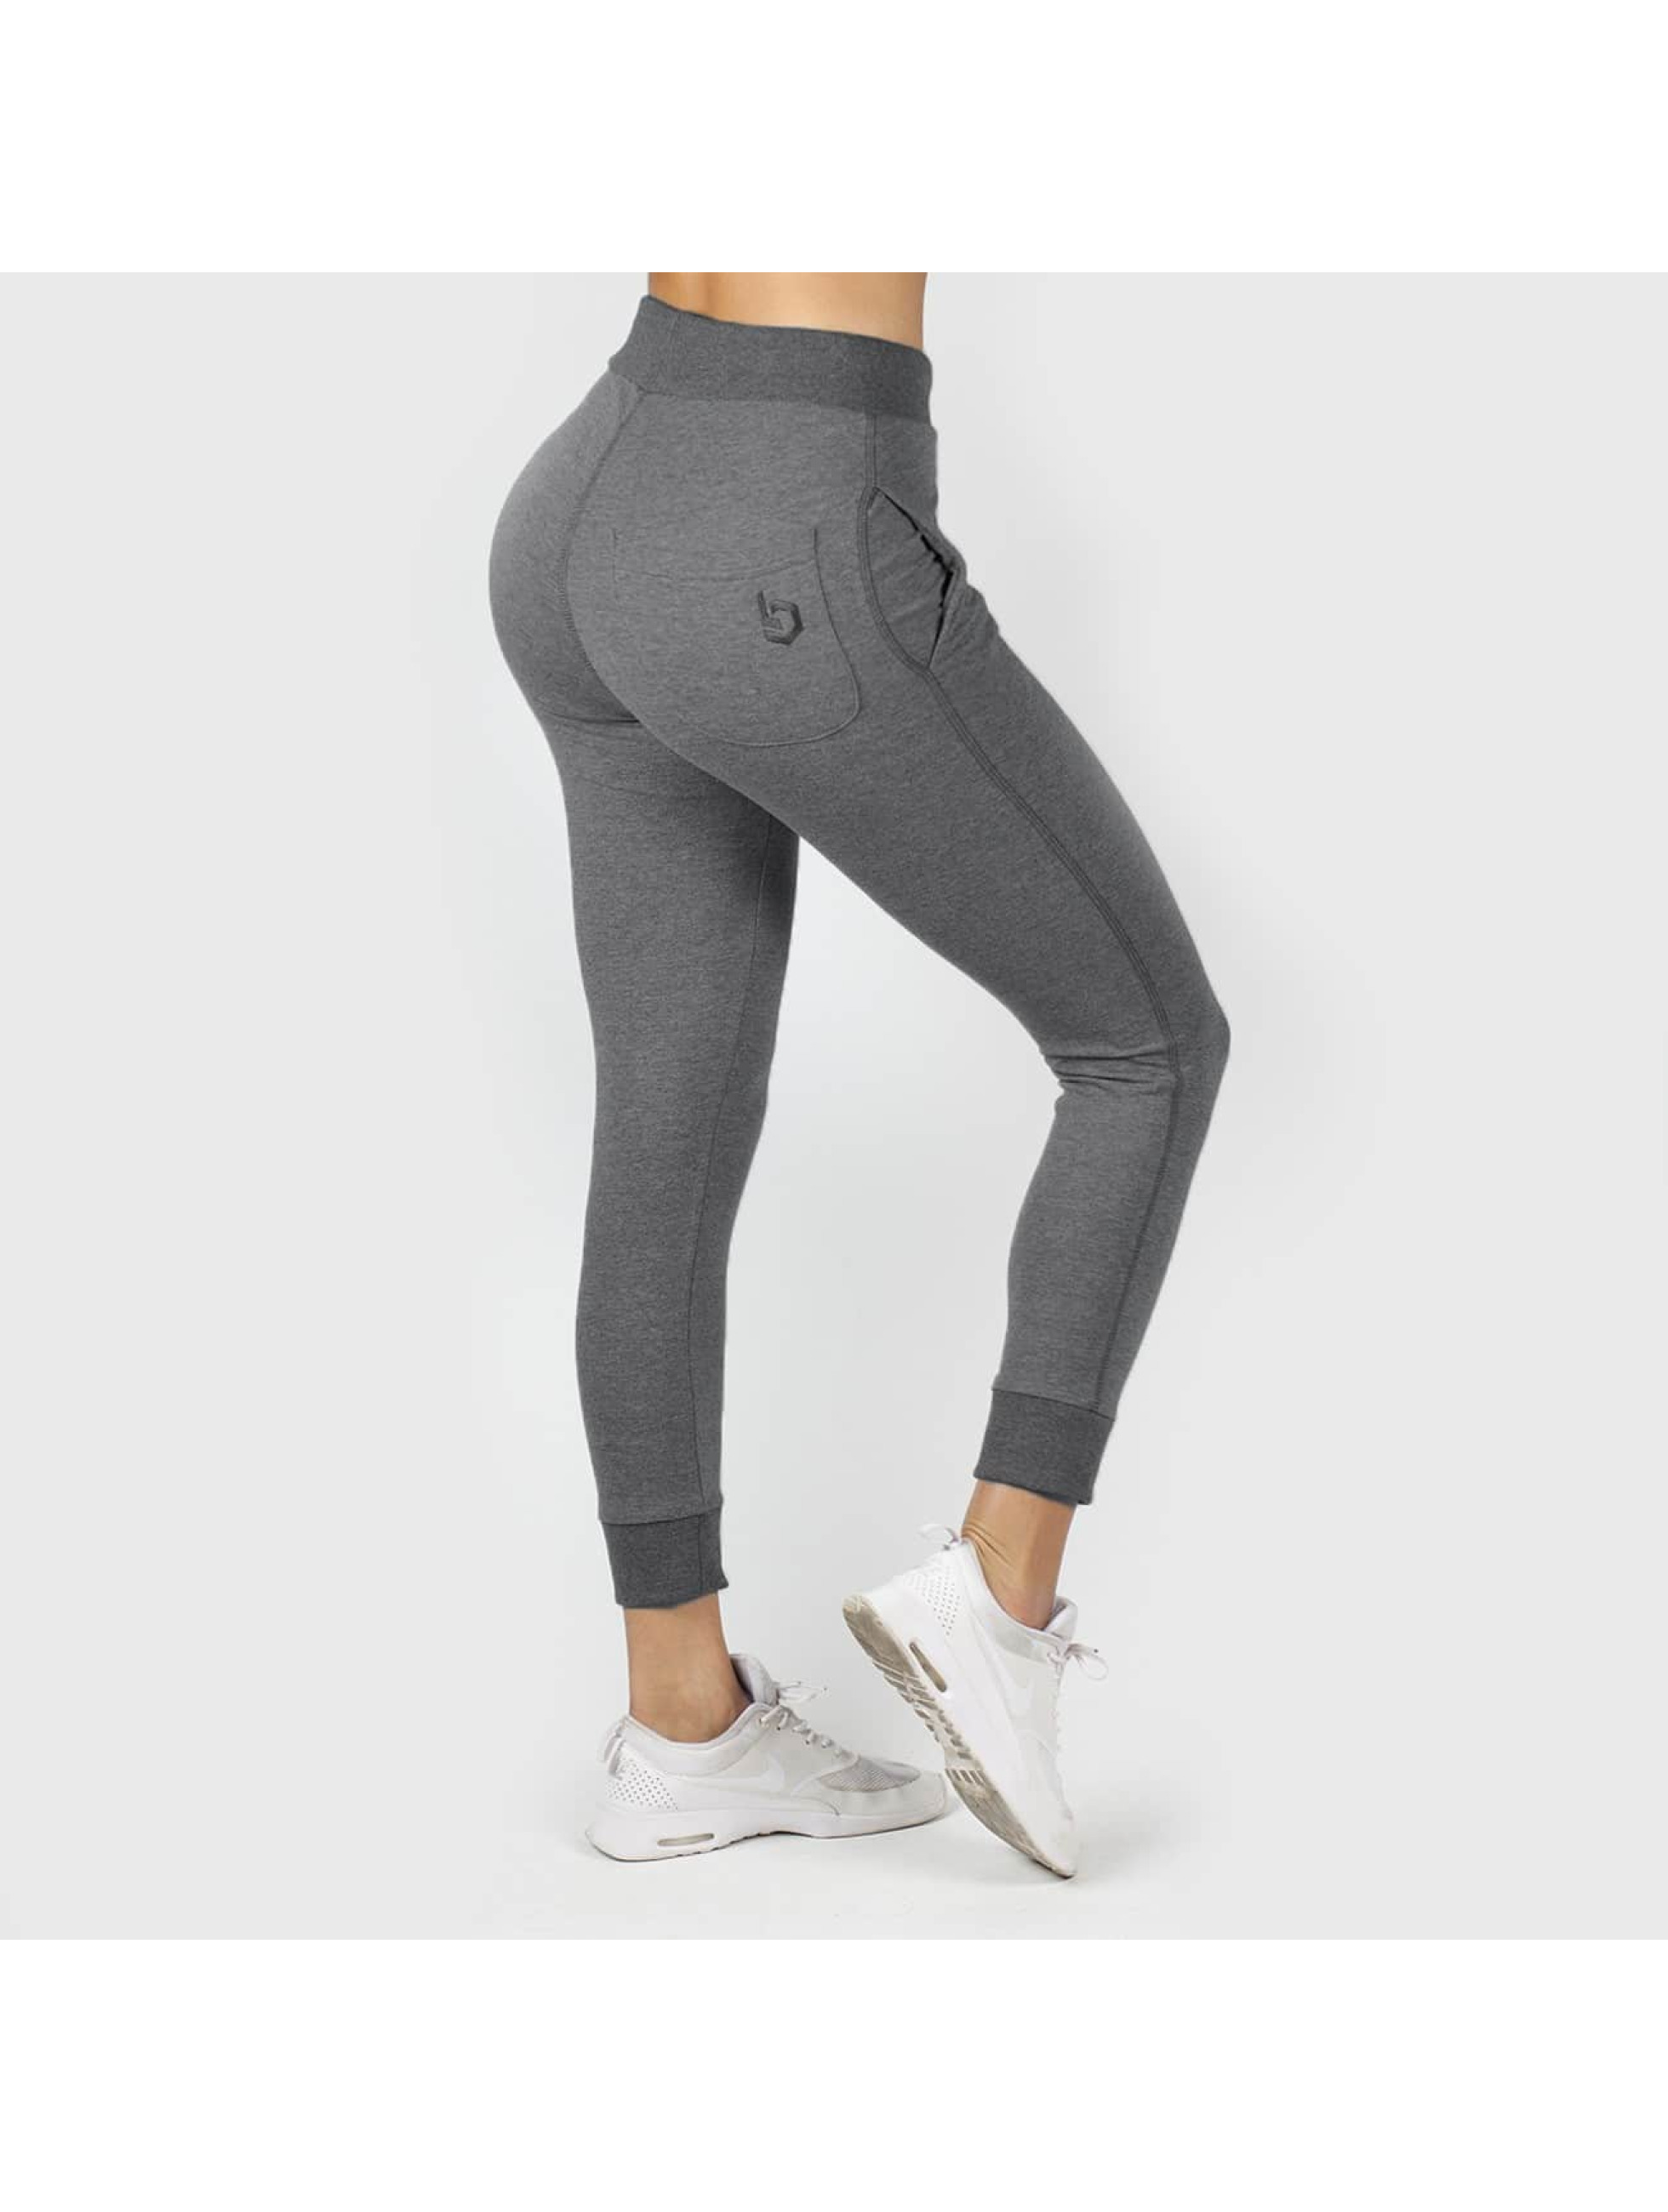 Beyond Limits Leggings/Treggings Motion szary